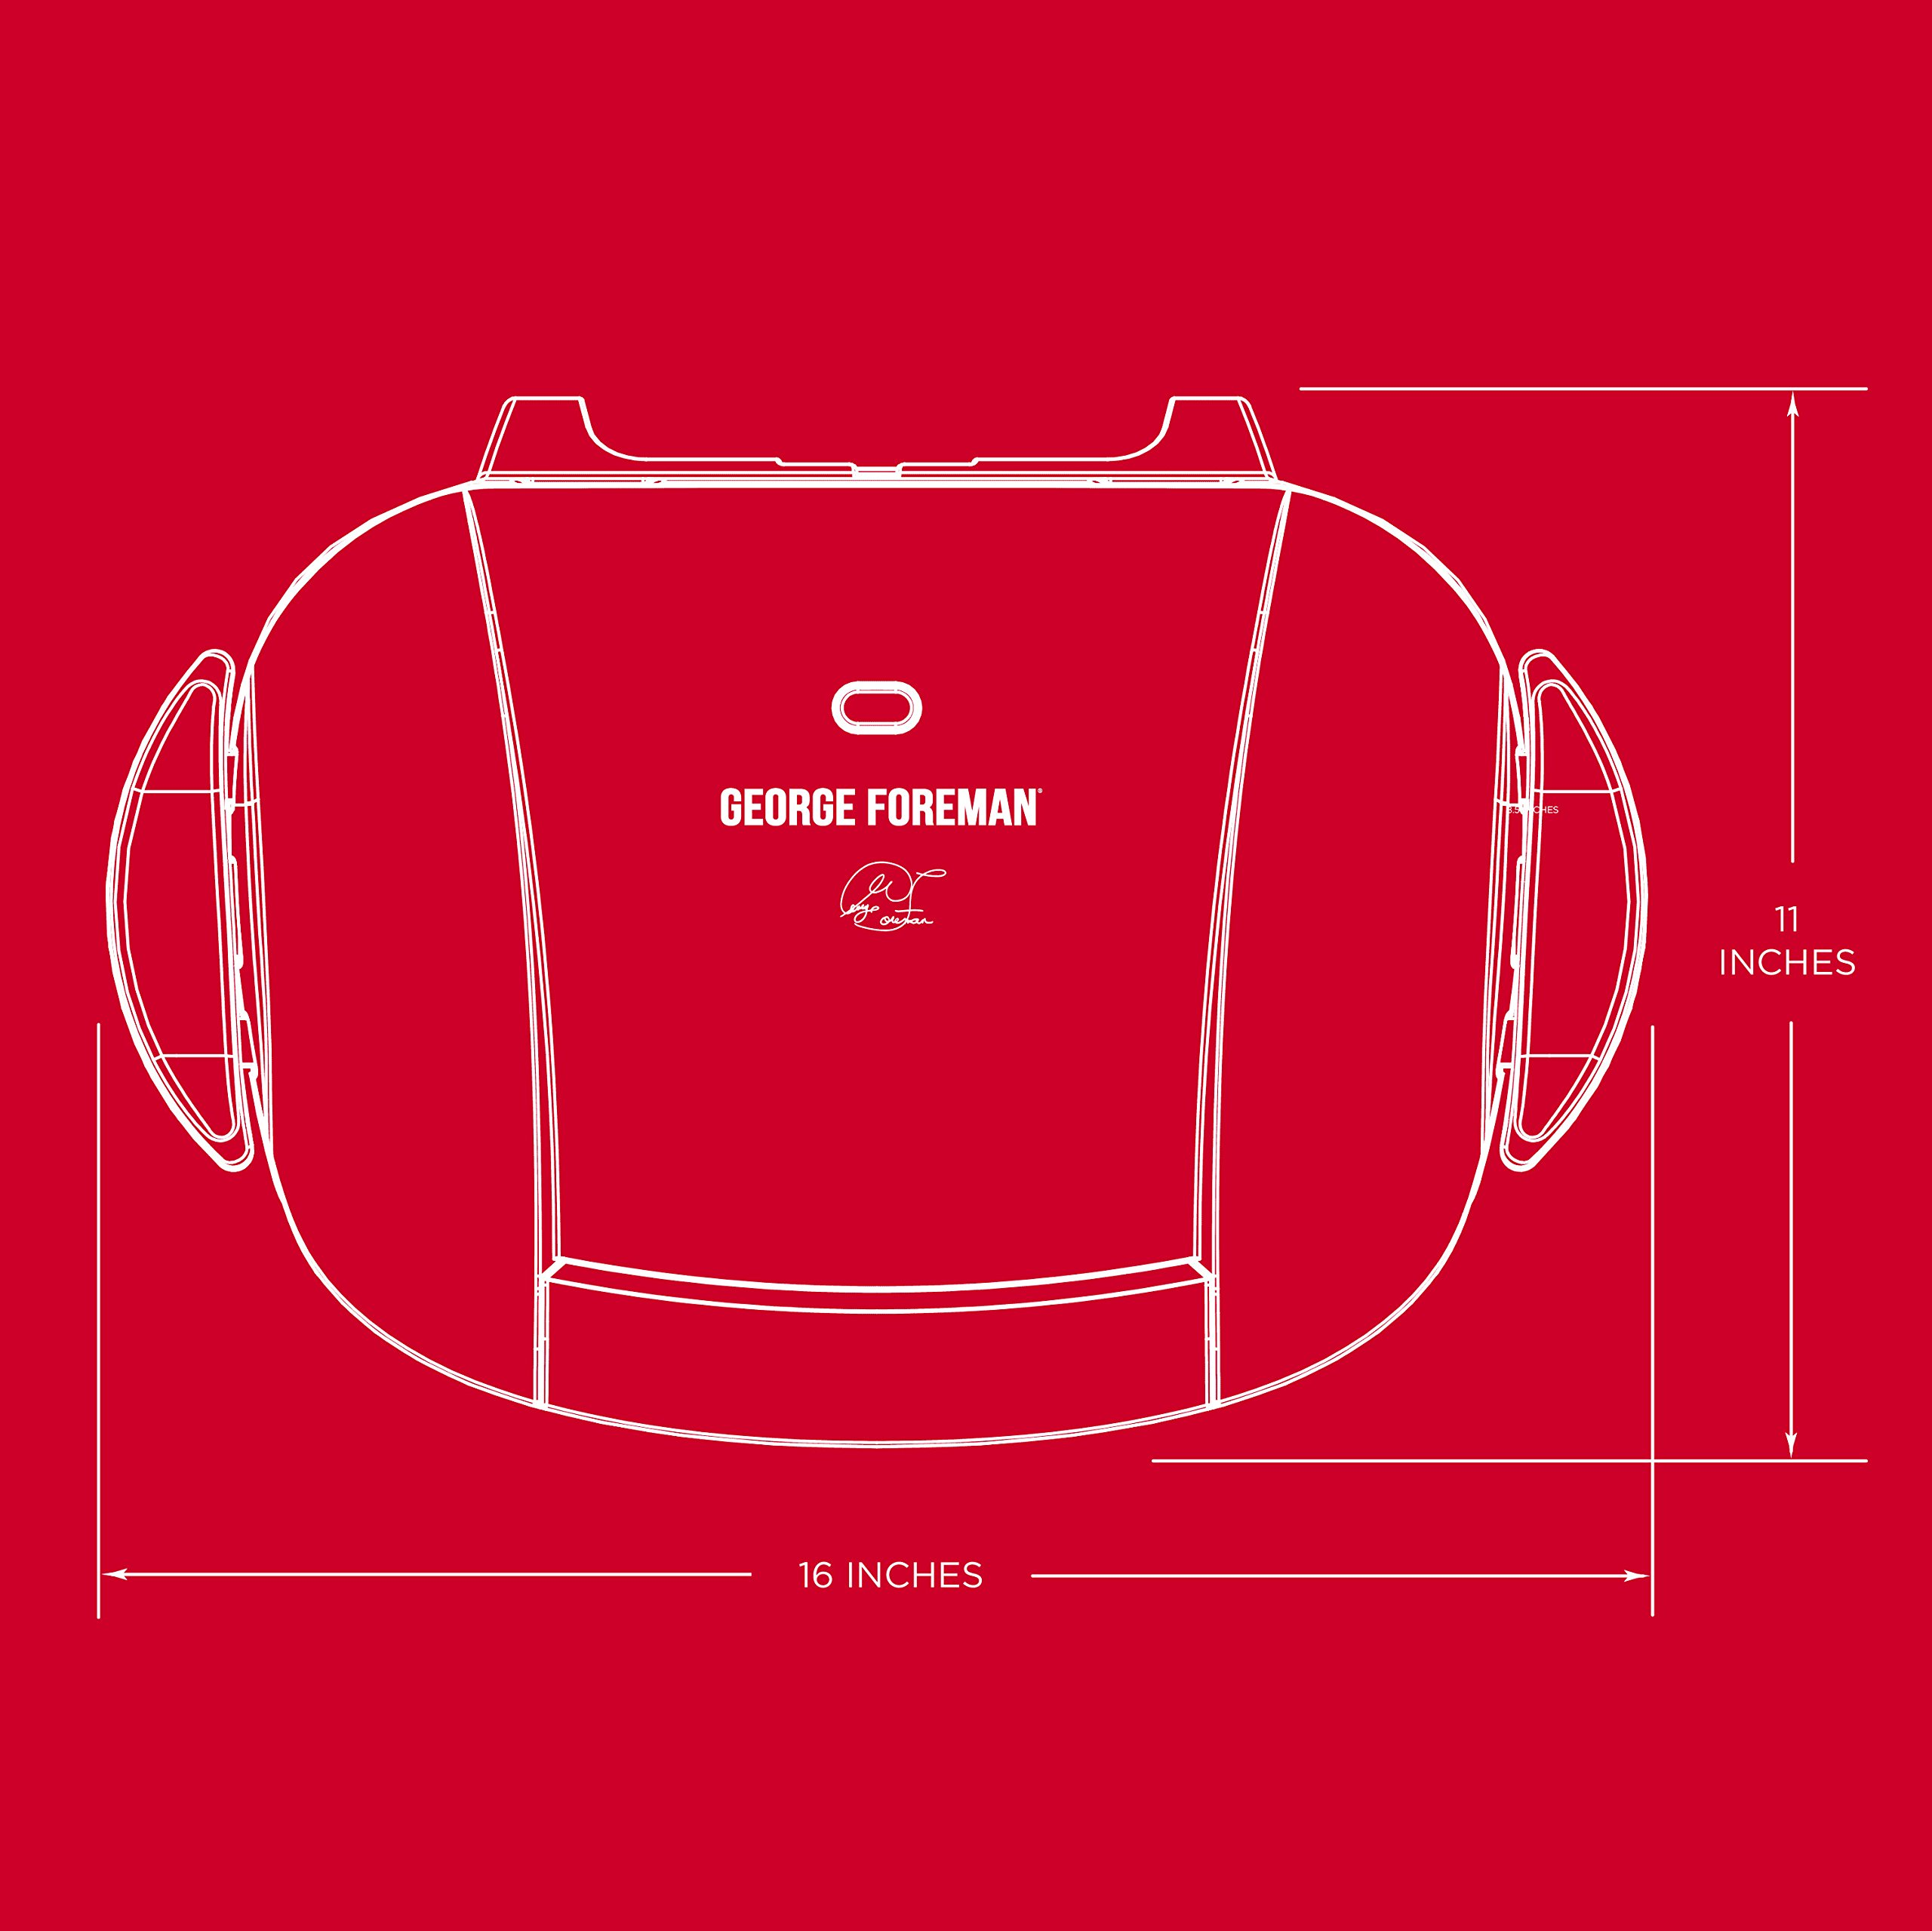 George Foreman 5-Serving Removable Plate Electric Indoor Grill and Panini Press, Red, GRP0004R by George Foreman (Image #7)